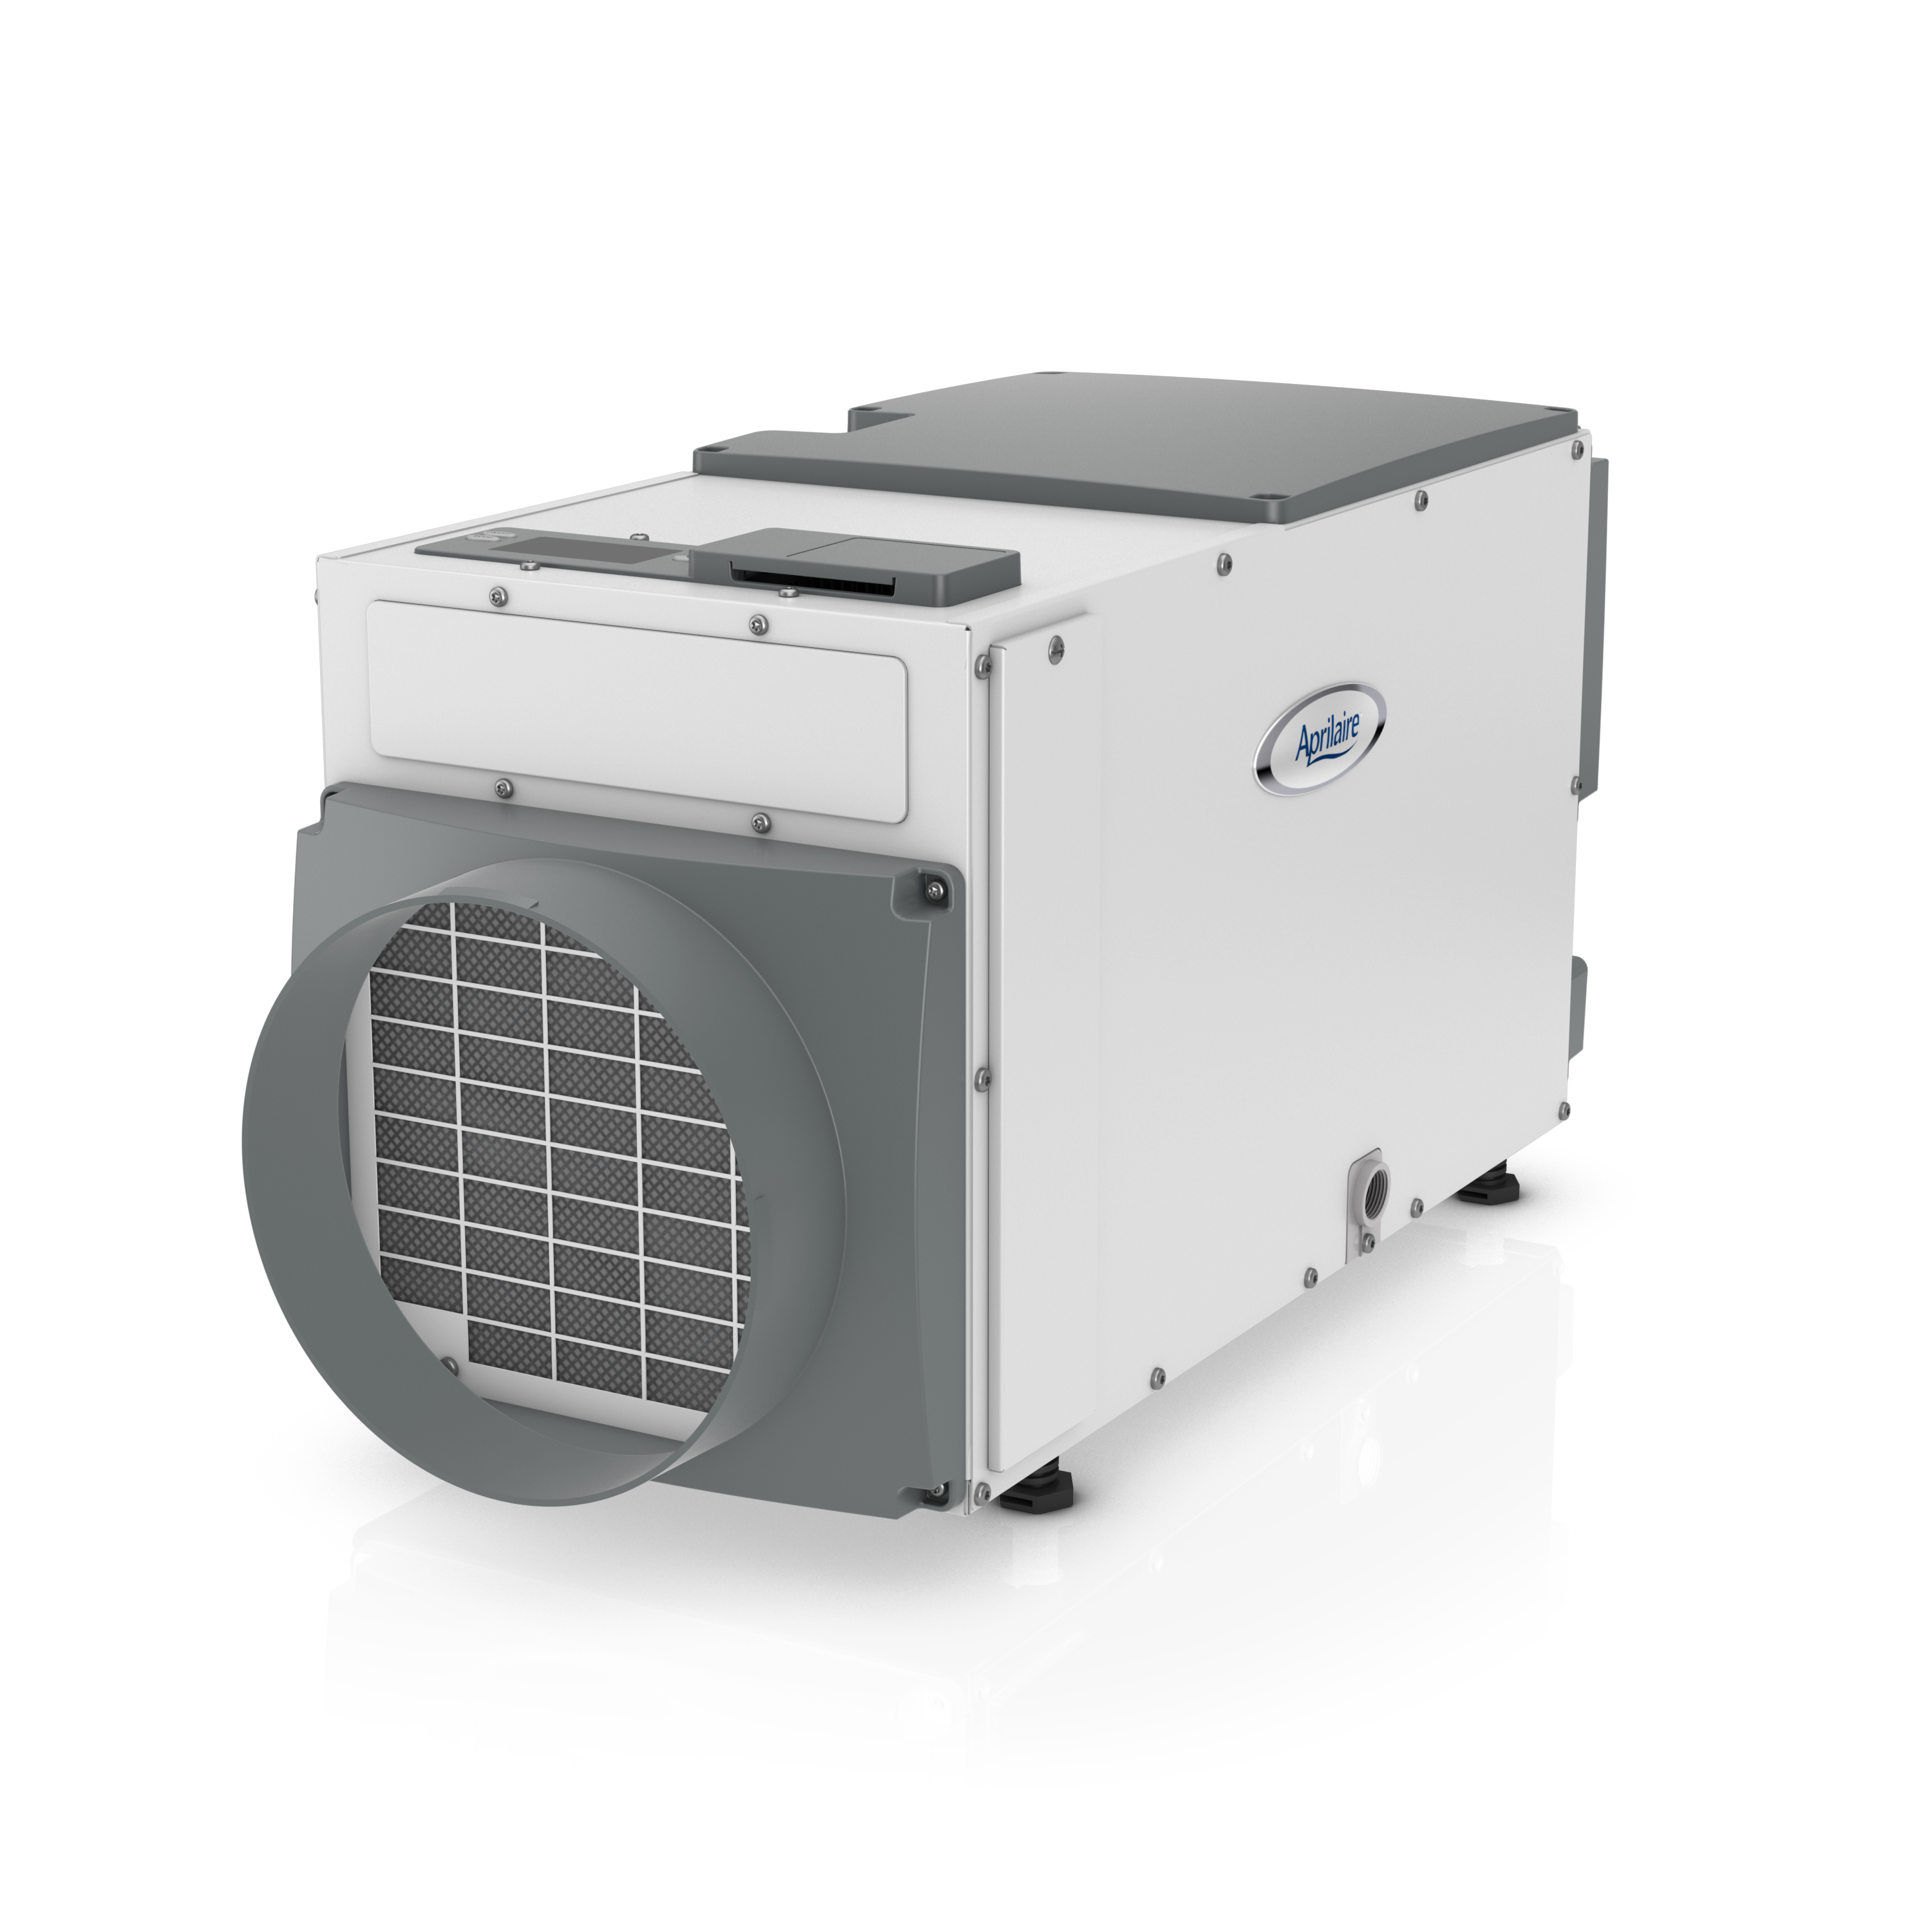 model-8192-ventilator-dehumidifier